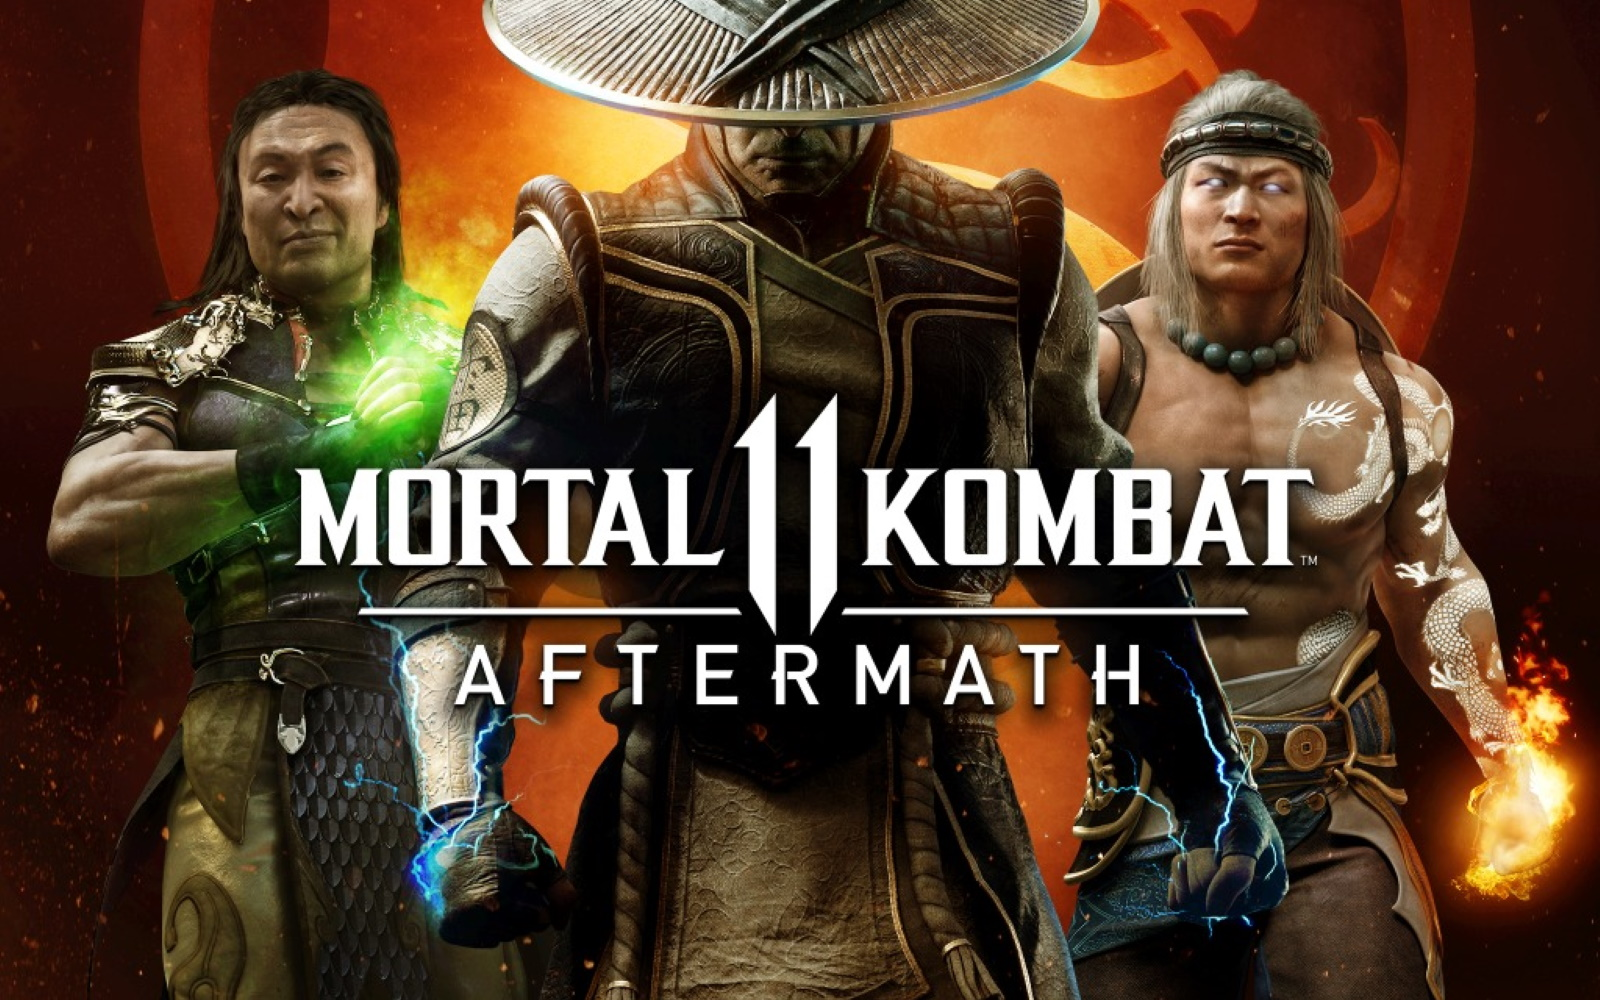 More Mortal Kombat 11 Coming With Aftermath